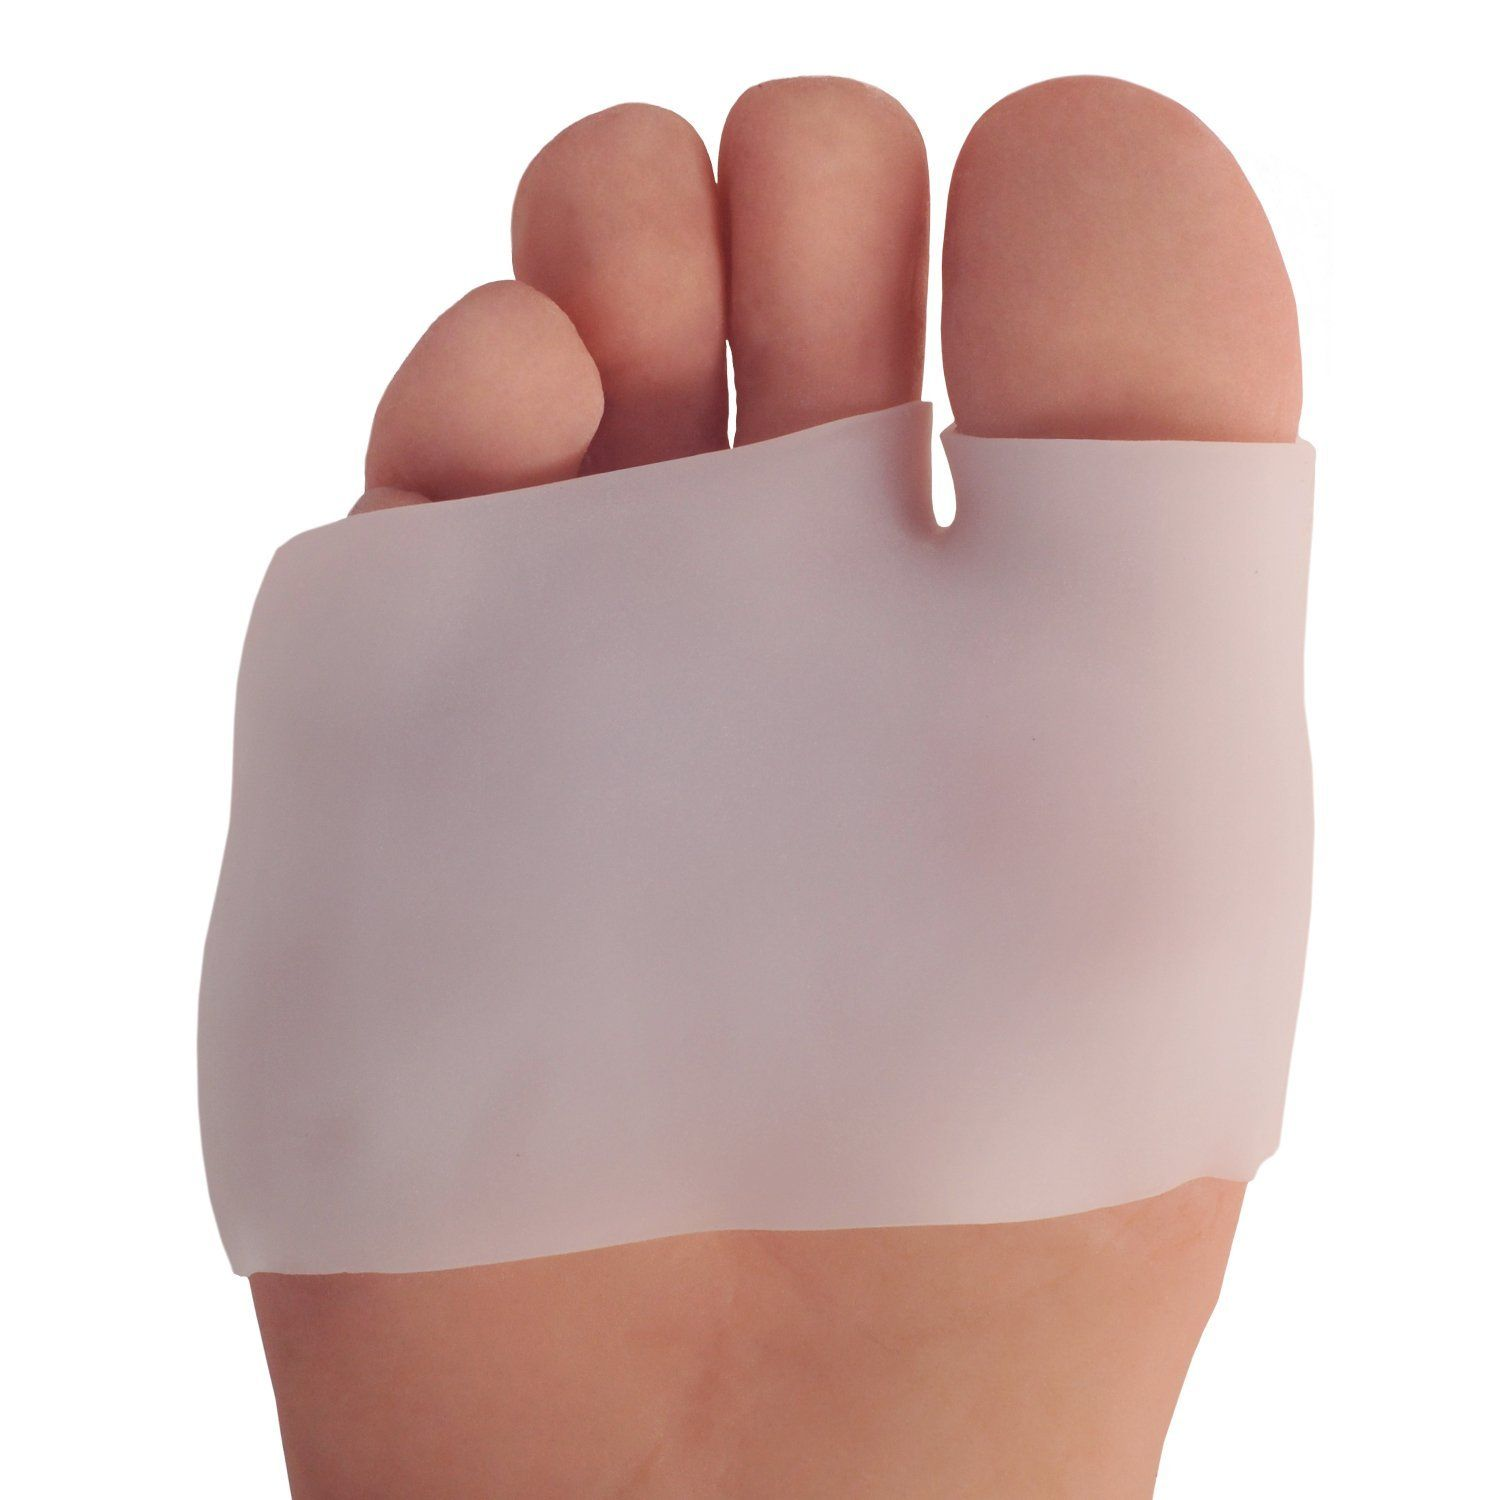 Are corns on feet painful Use these soft gel sleeves to prevent